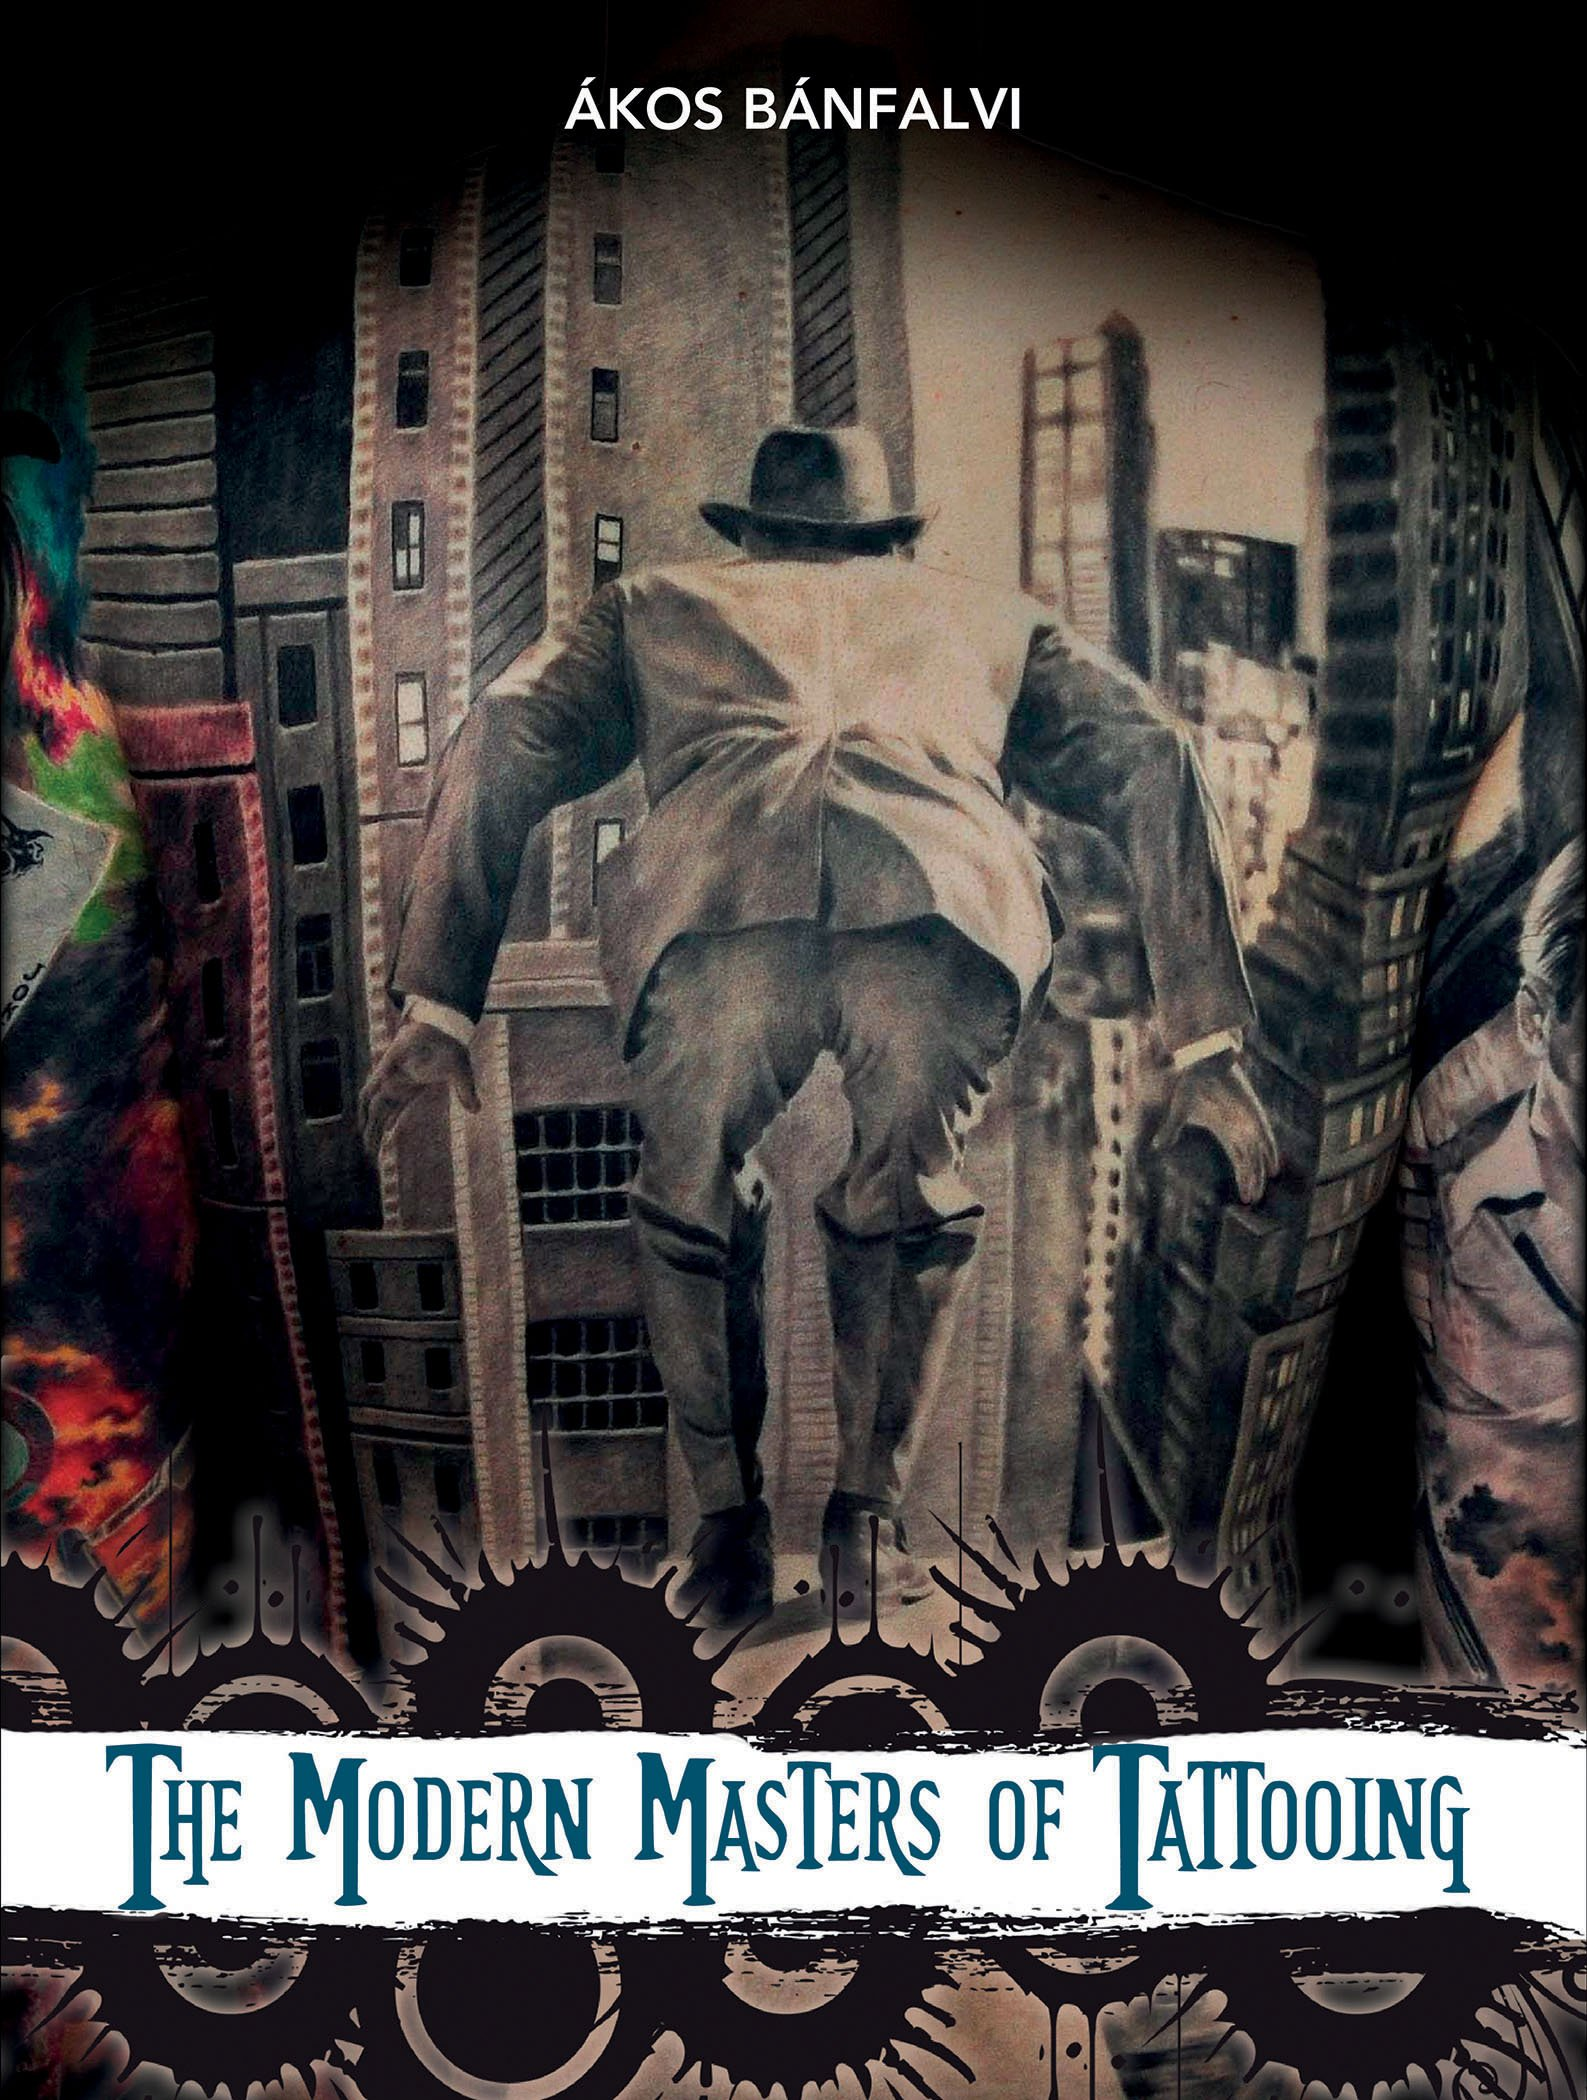 The Modern Masters of Tattooing: Exclusive interviews with a few of the best tattoo artists of the new generation from around the world